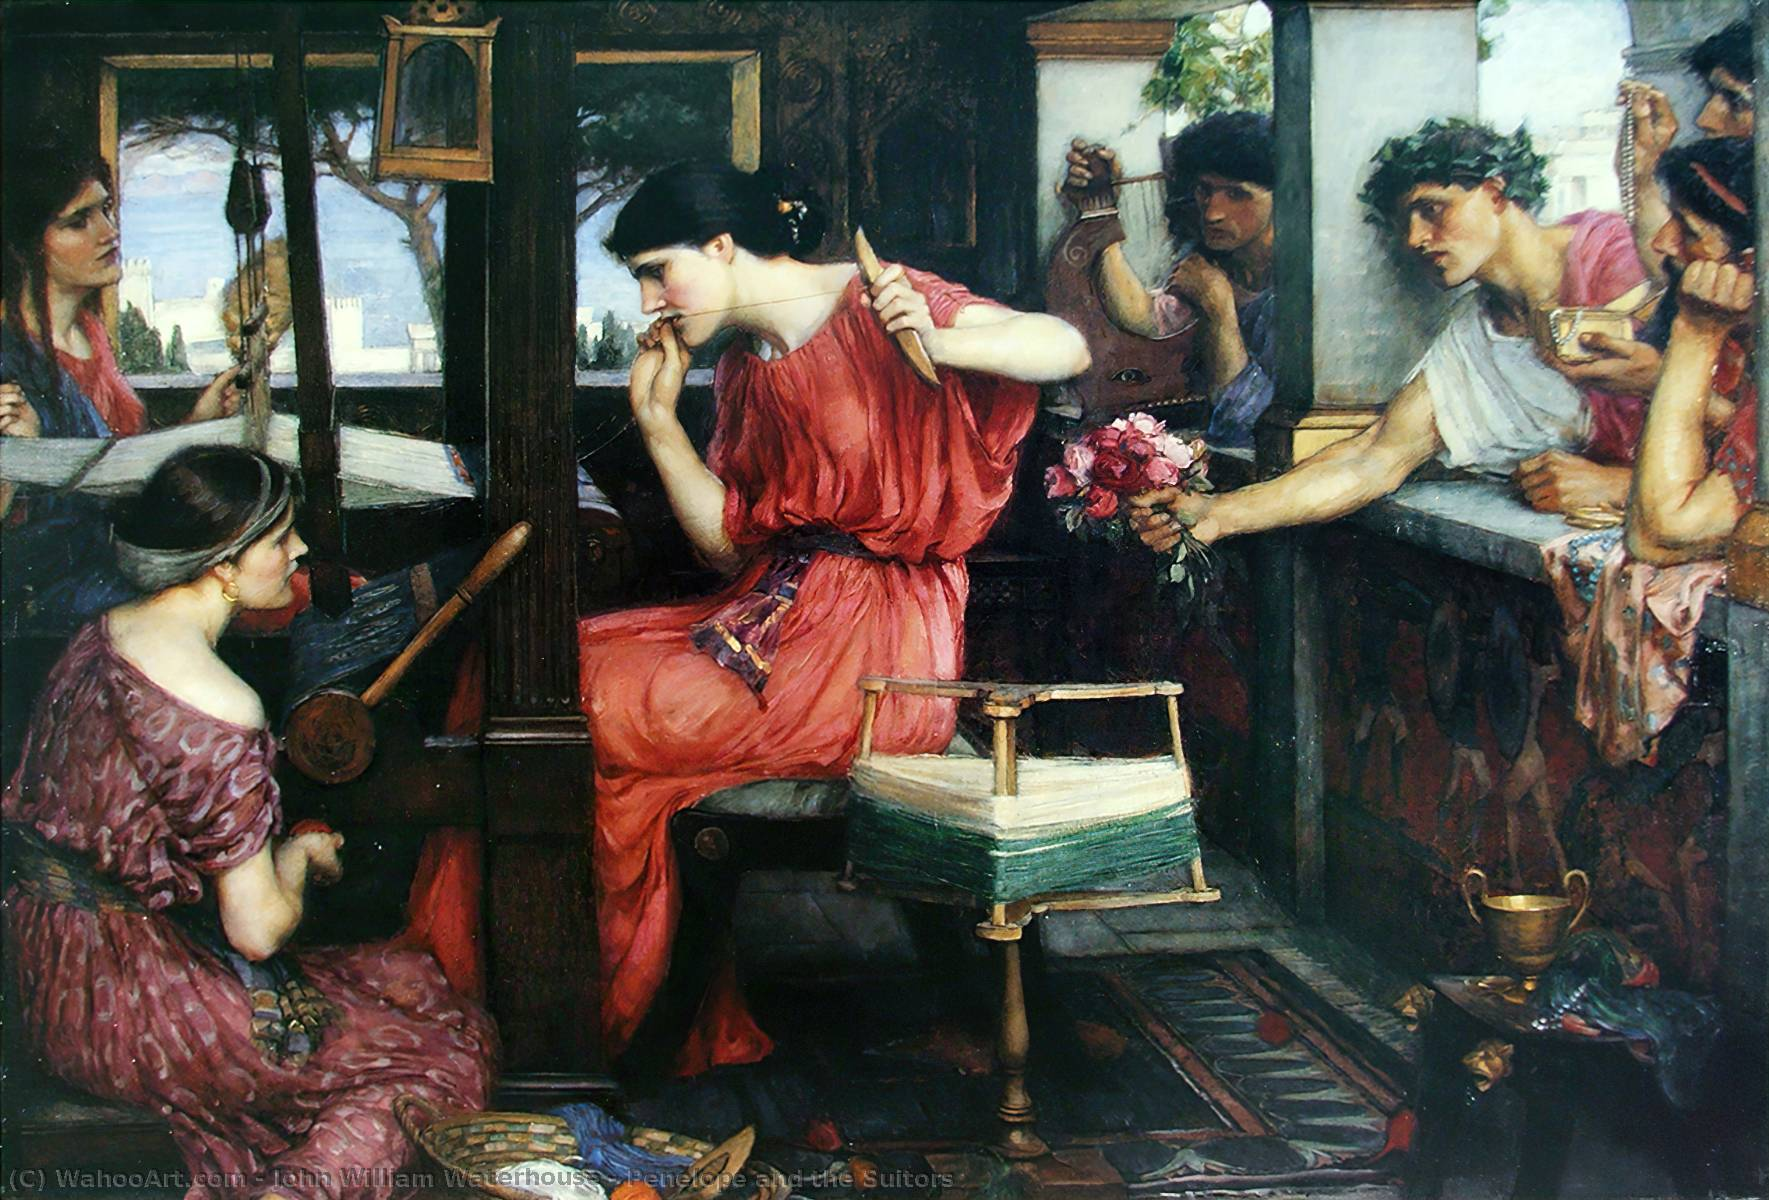 Penelope and the Suitors, Oil On Canvas by John William Waterhouse (1849-1917, Italy)